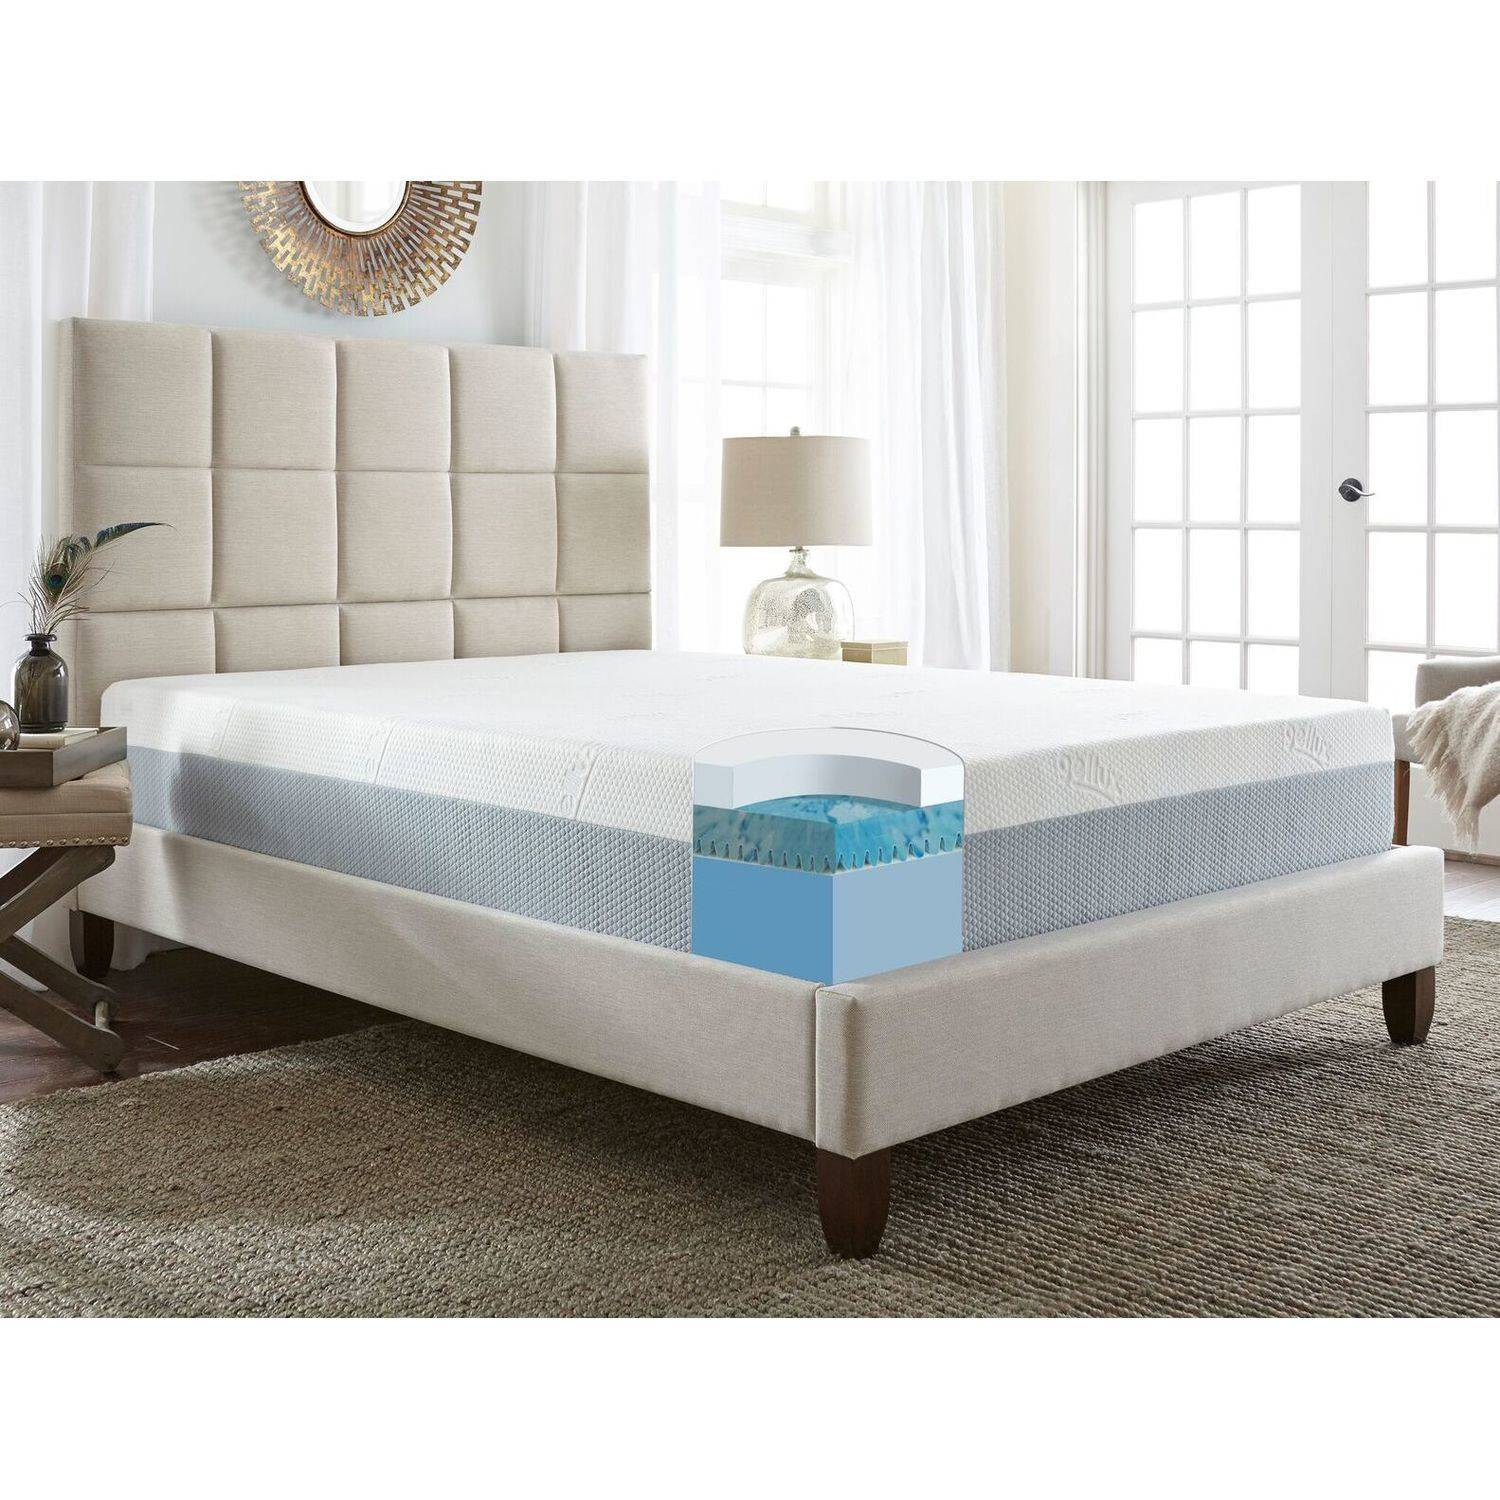 Contura III - 12'' Medium Firm Memory Foam Mattress, Multiple Sizes